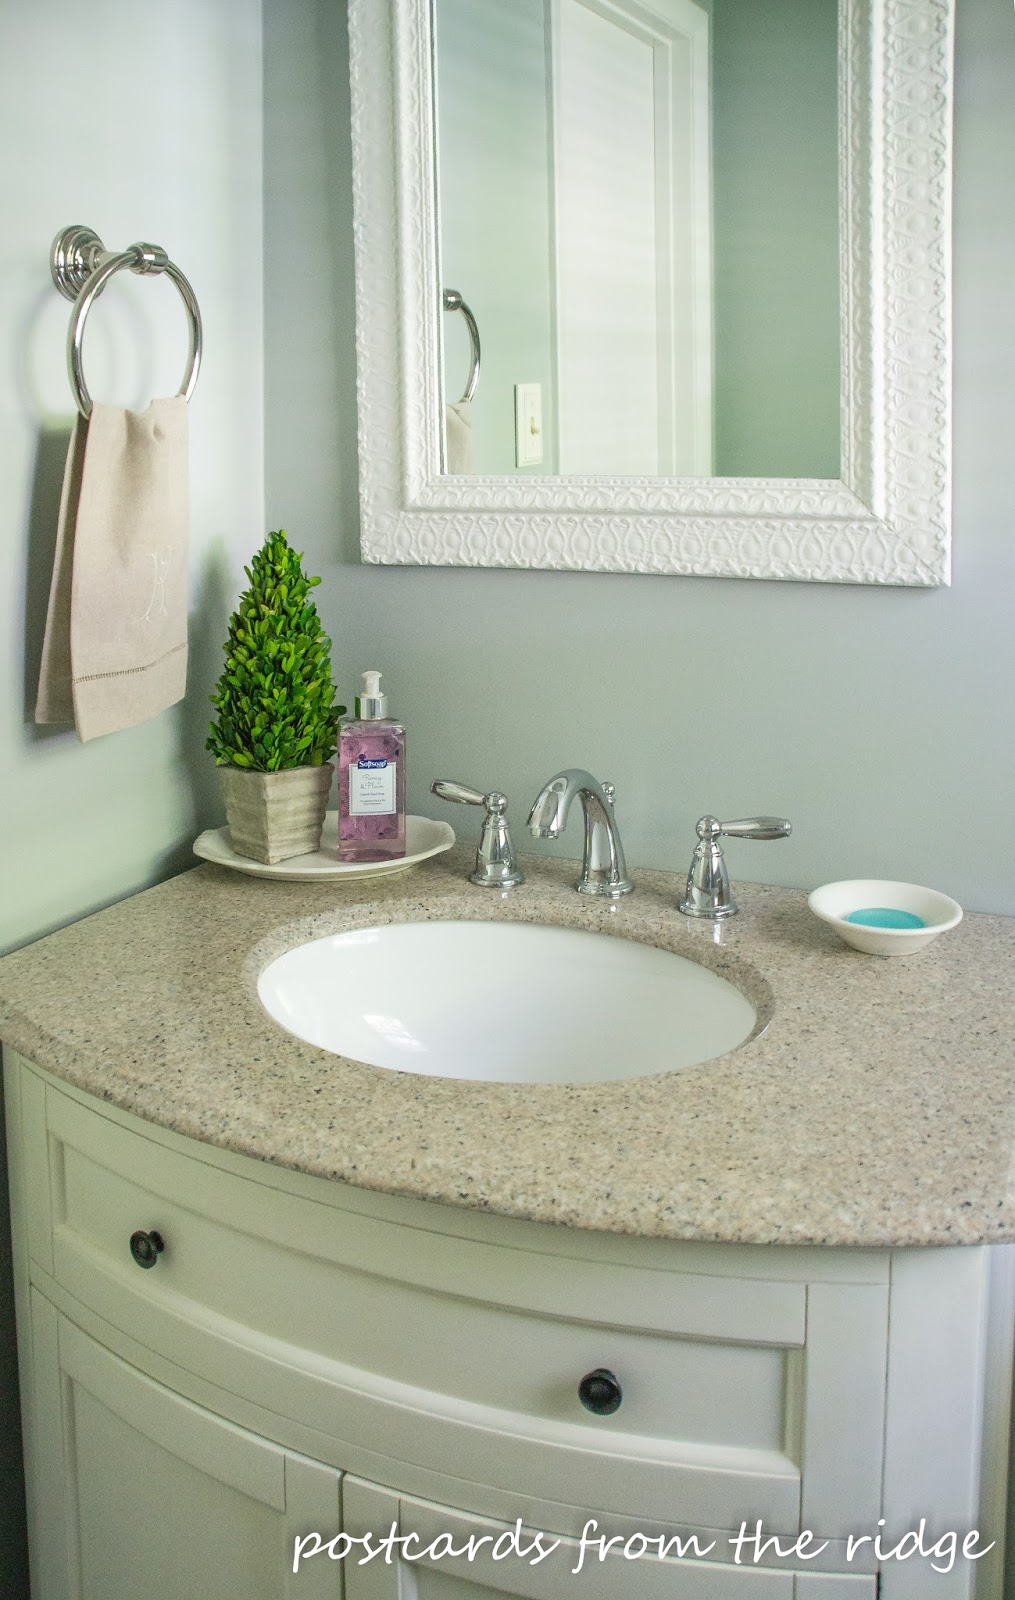 Use small ironstone dishes in the bathroom for soaps, etc.